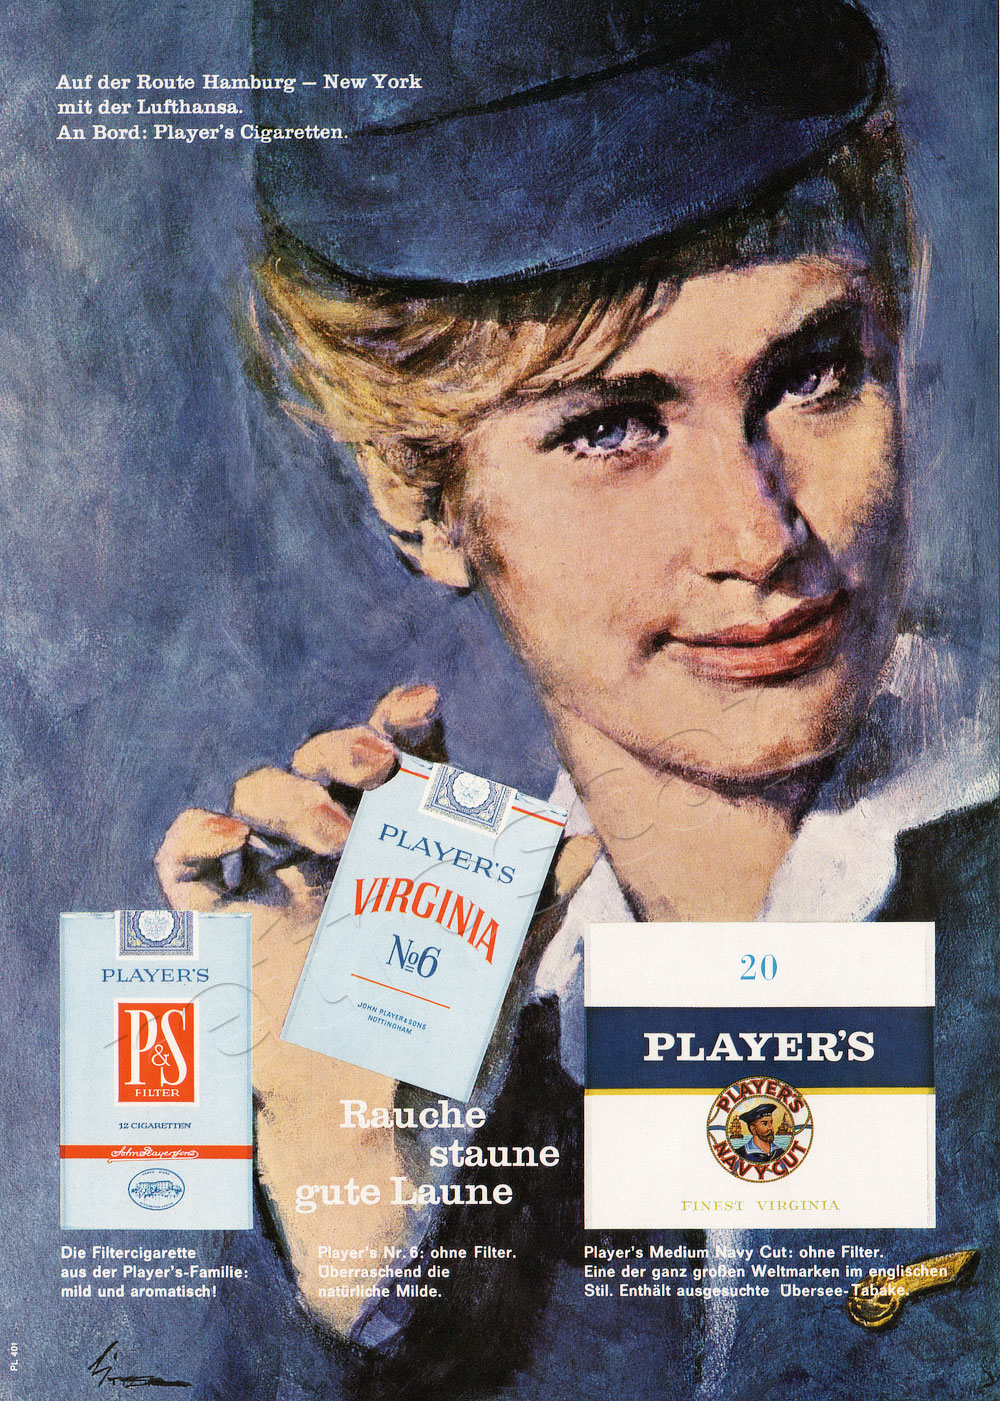 1964 Player's Cigarettes - unframed vintage ad